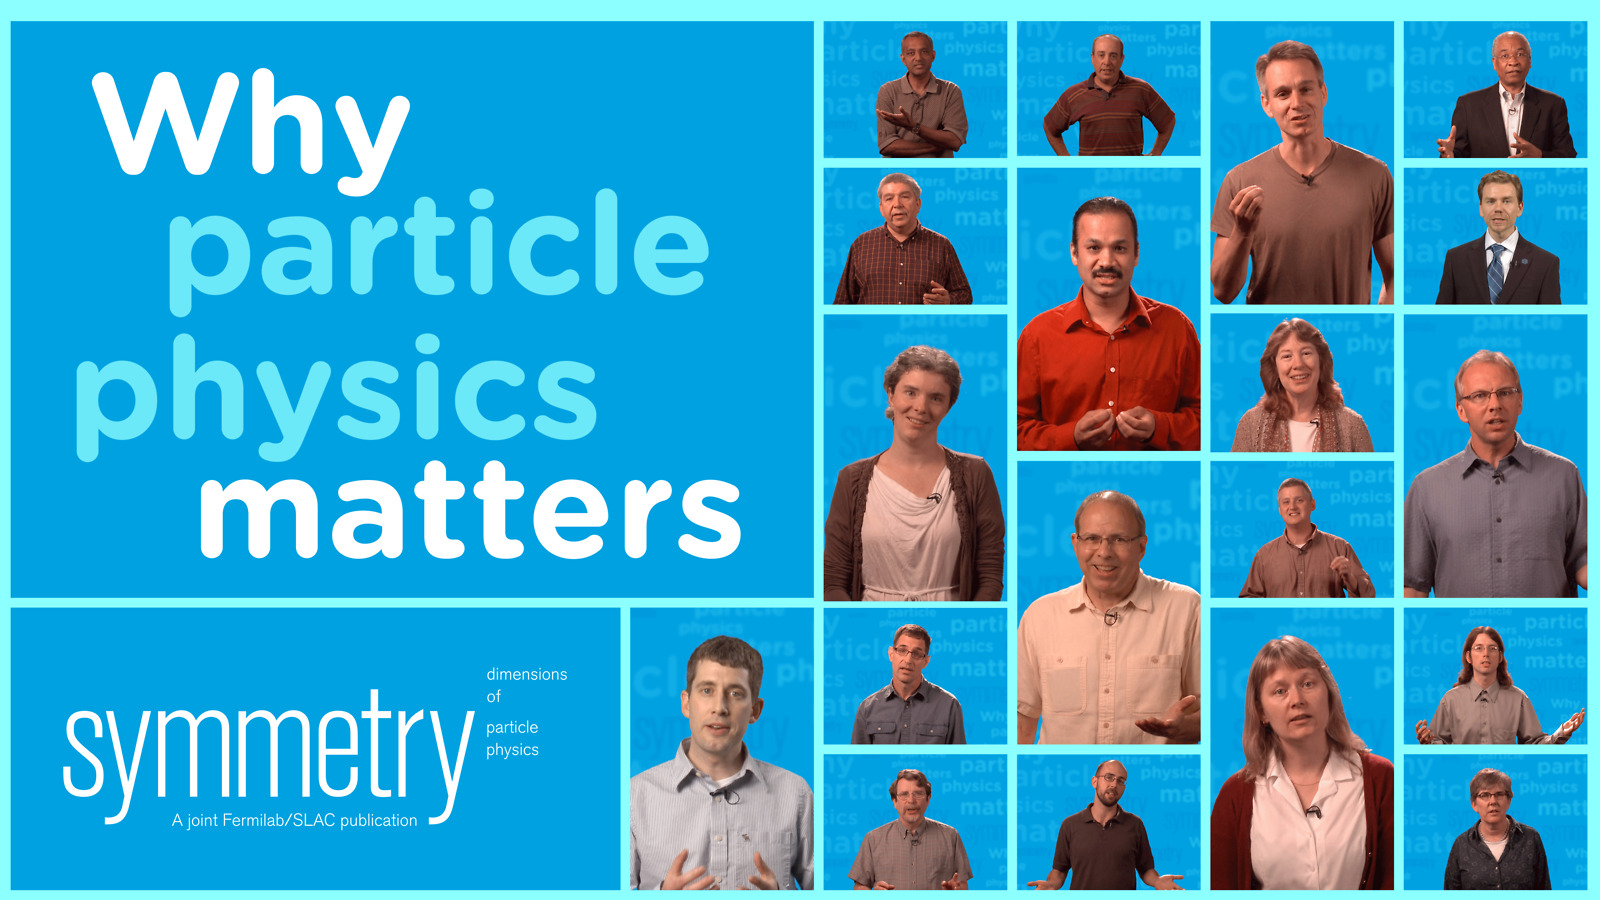 Illustration: Why particle physics matters